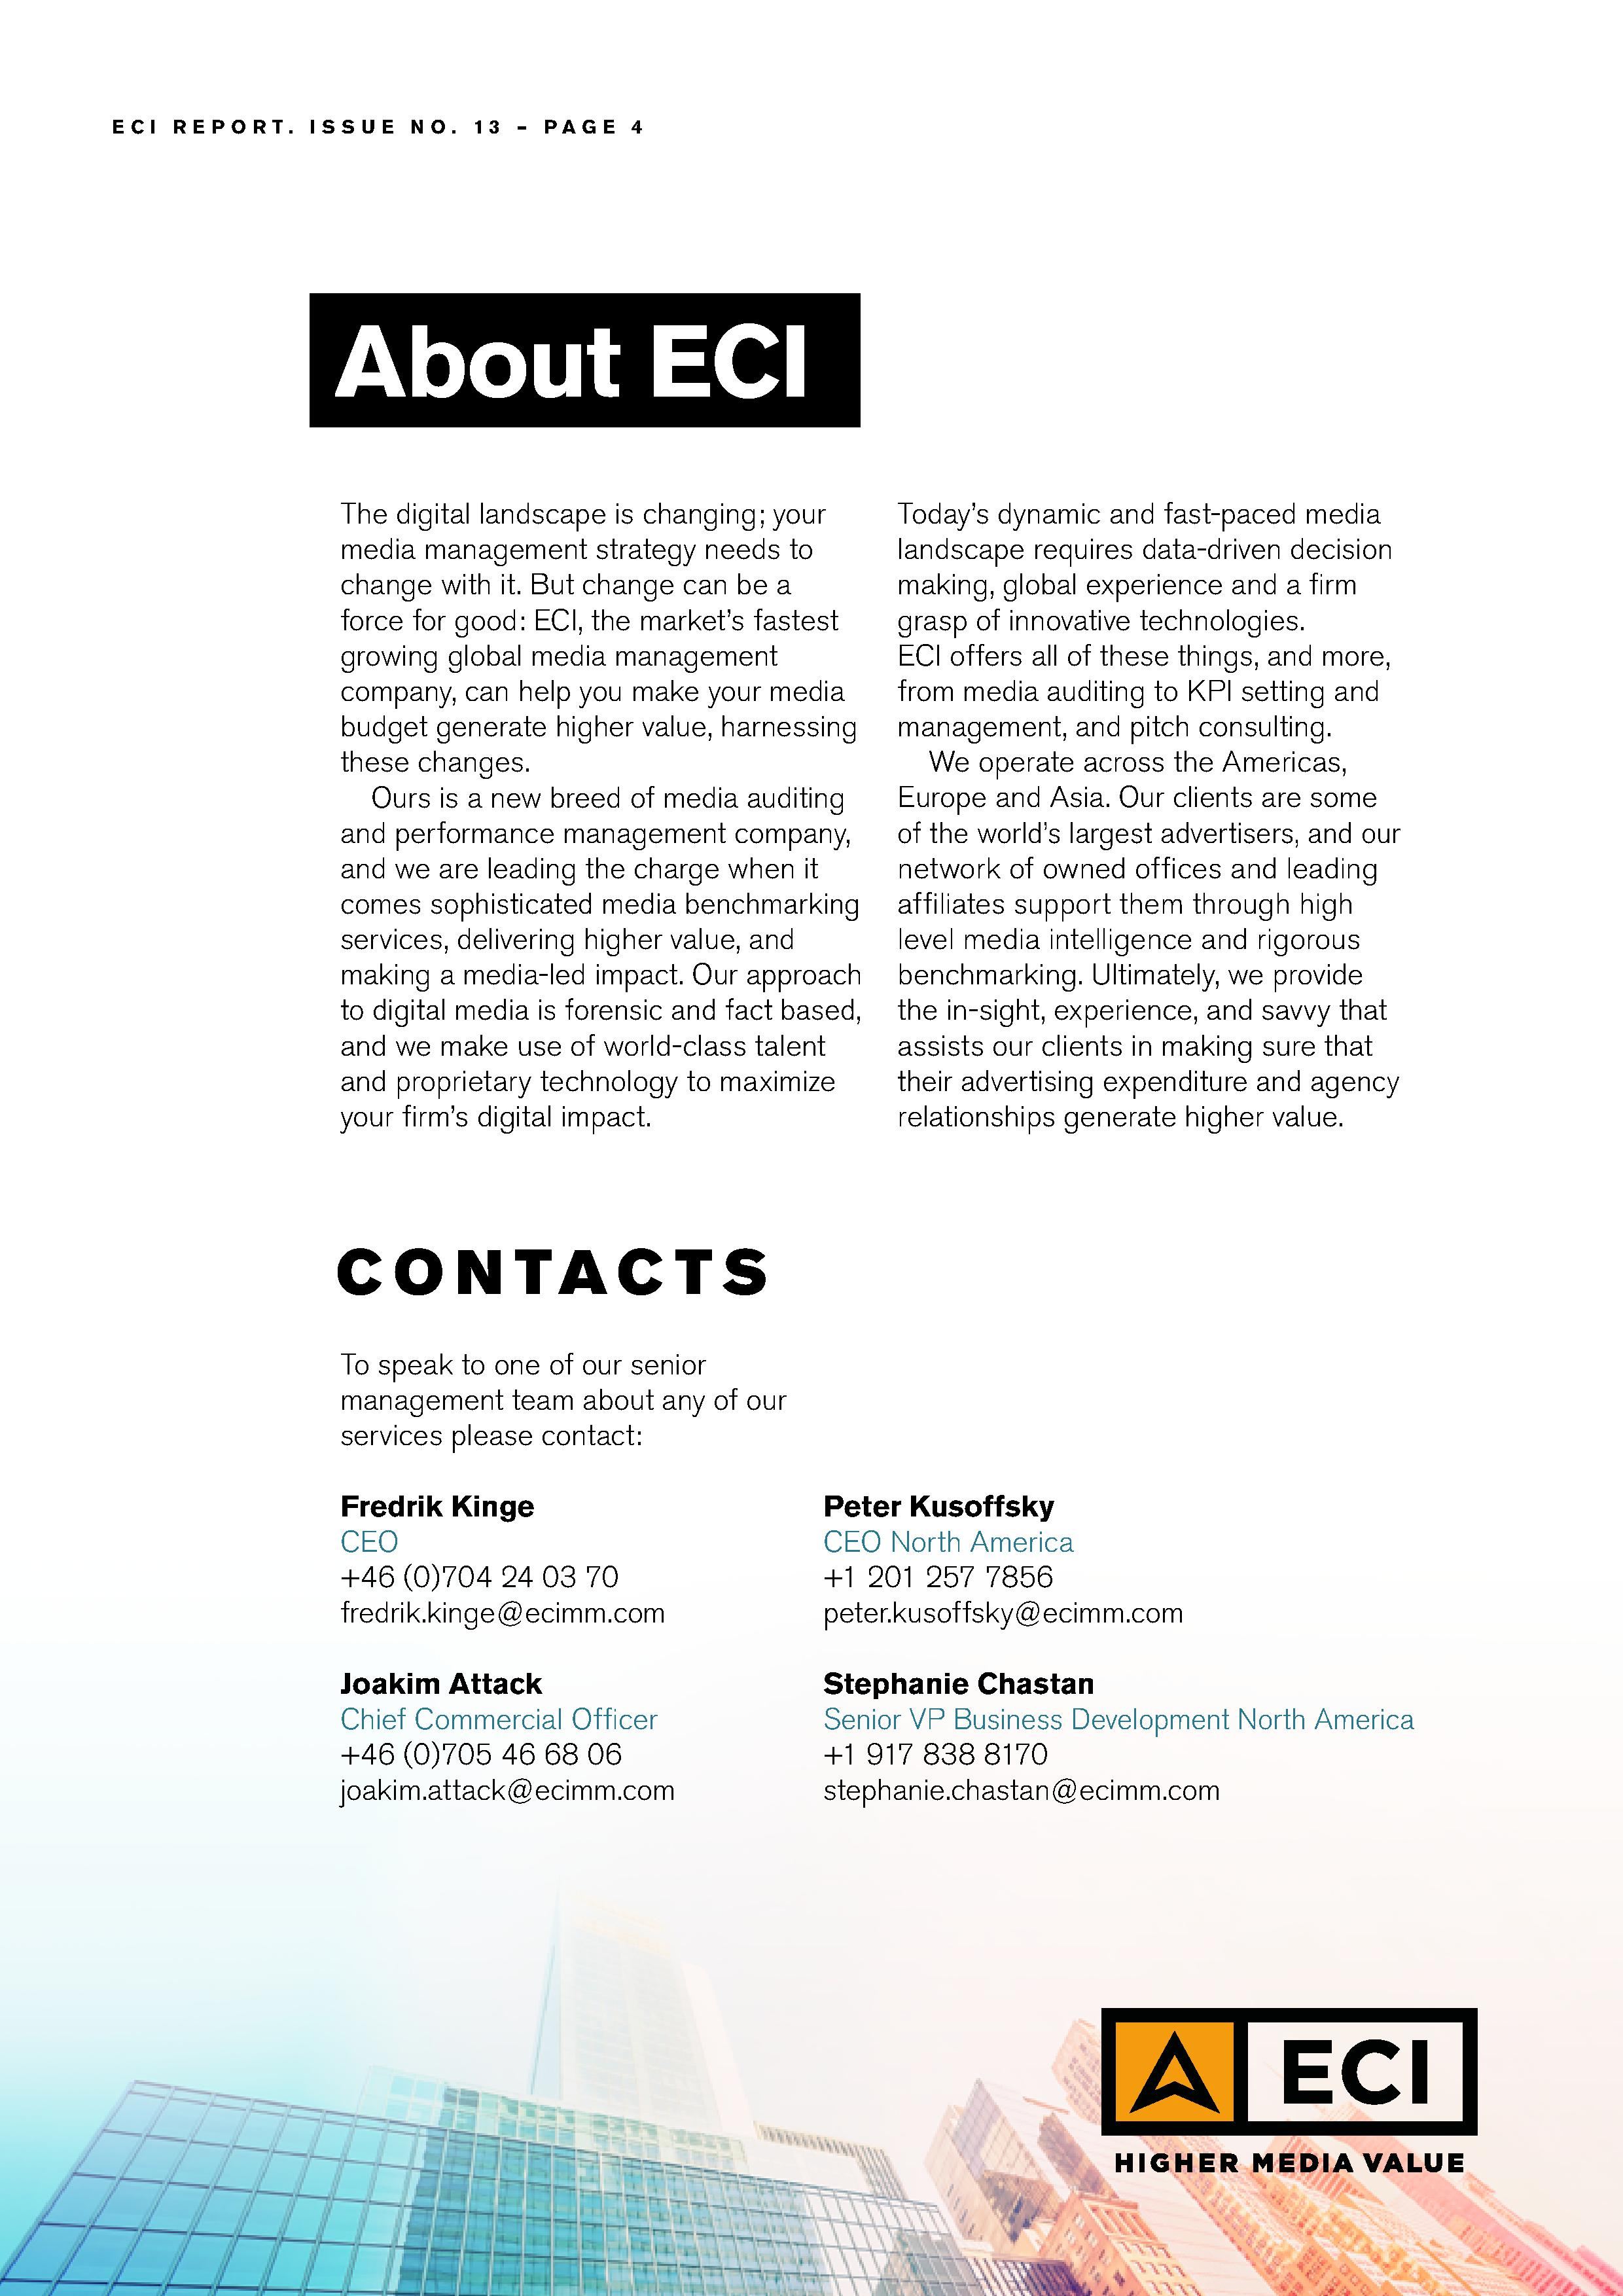 eci_report_issue13_2016004